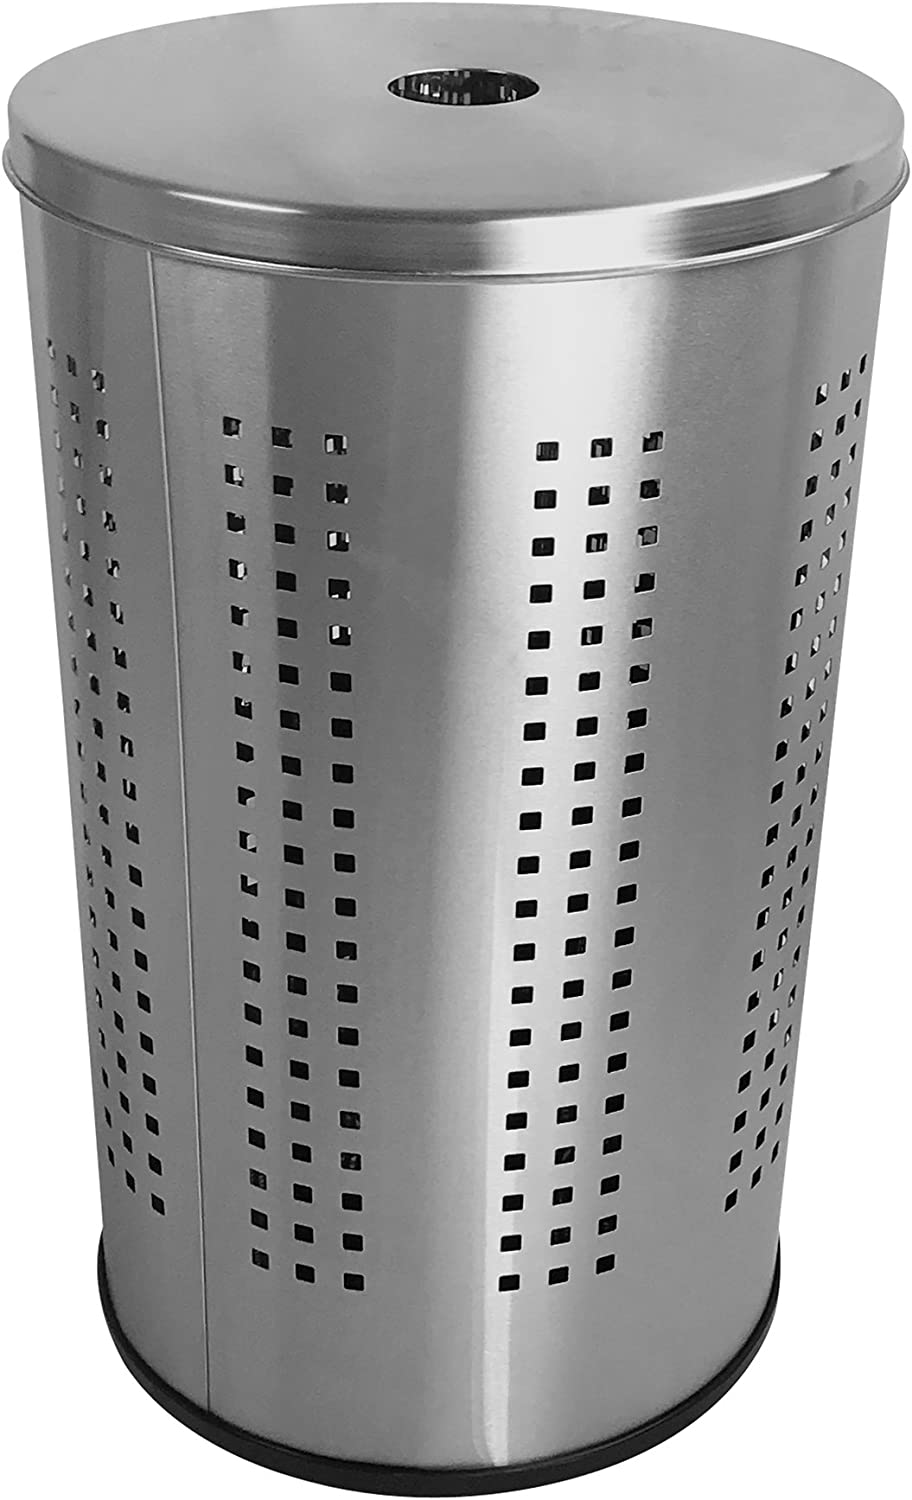 Brushed Stainless Steel Laundry Bin & Hamper | 46L Ventilated Stainless Steel Clothes Basket with Polished Lid | Life Time Warranty|